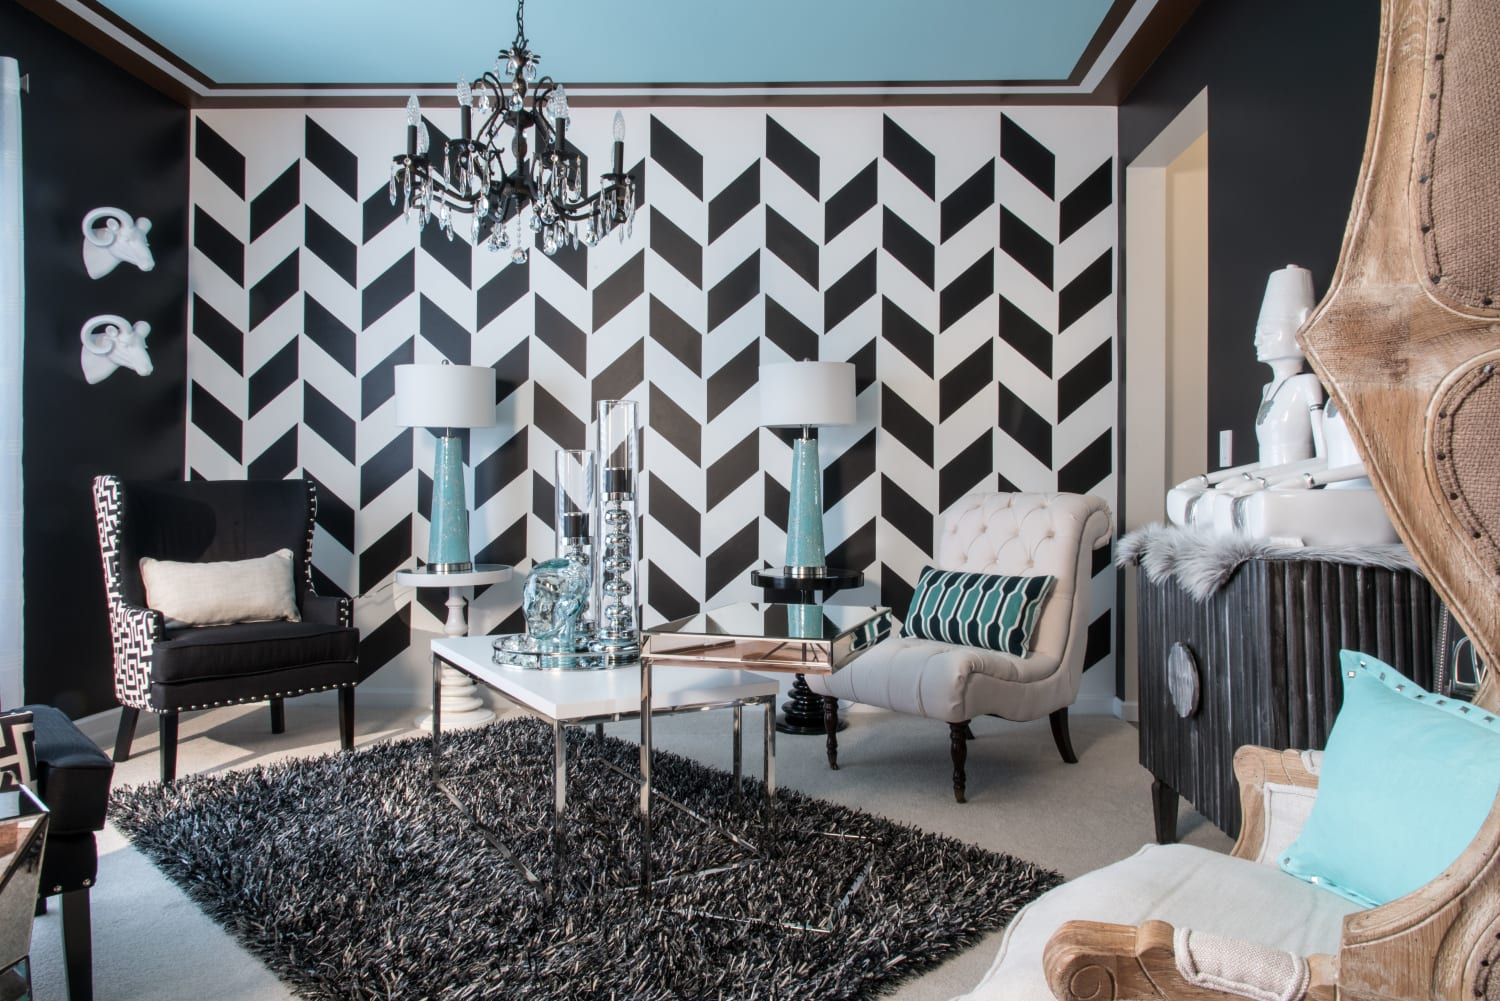 Glamorous Sitting Room Staggered Chevron Accent Wall Light Blue Ceiling Bohemian Furniture